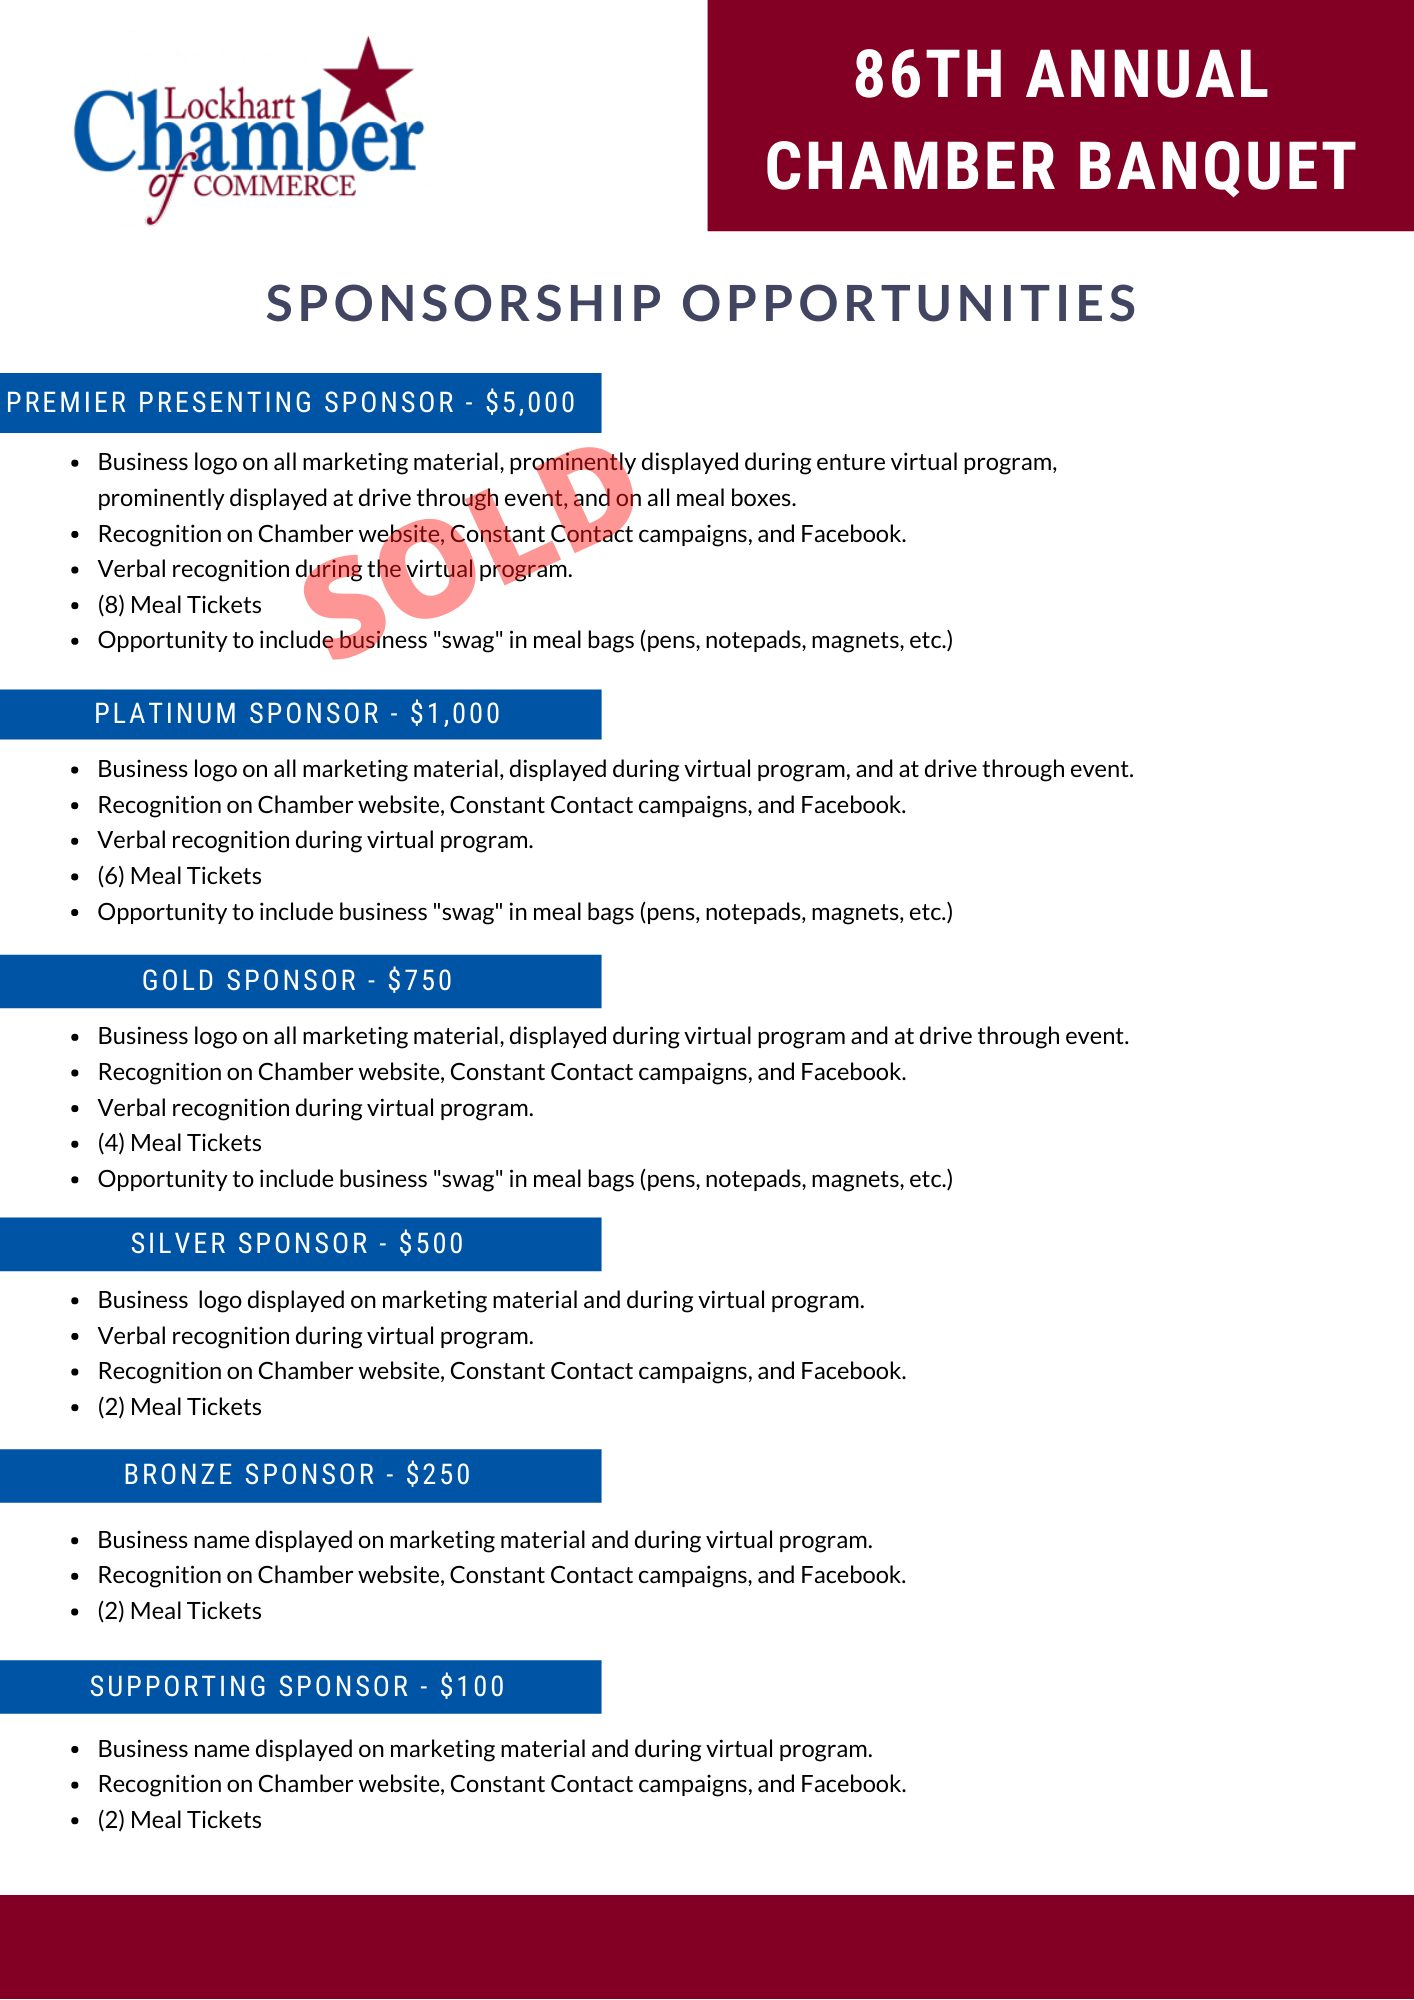 2021 Banquet Sponsorship Opportunities